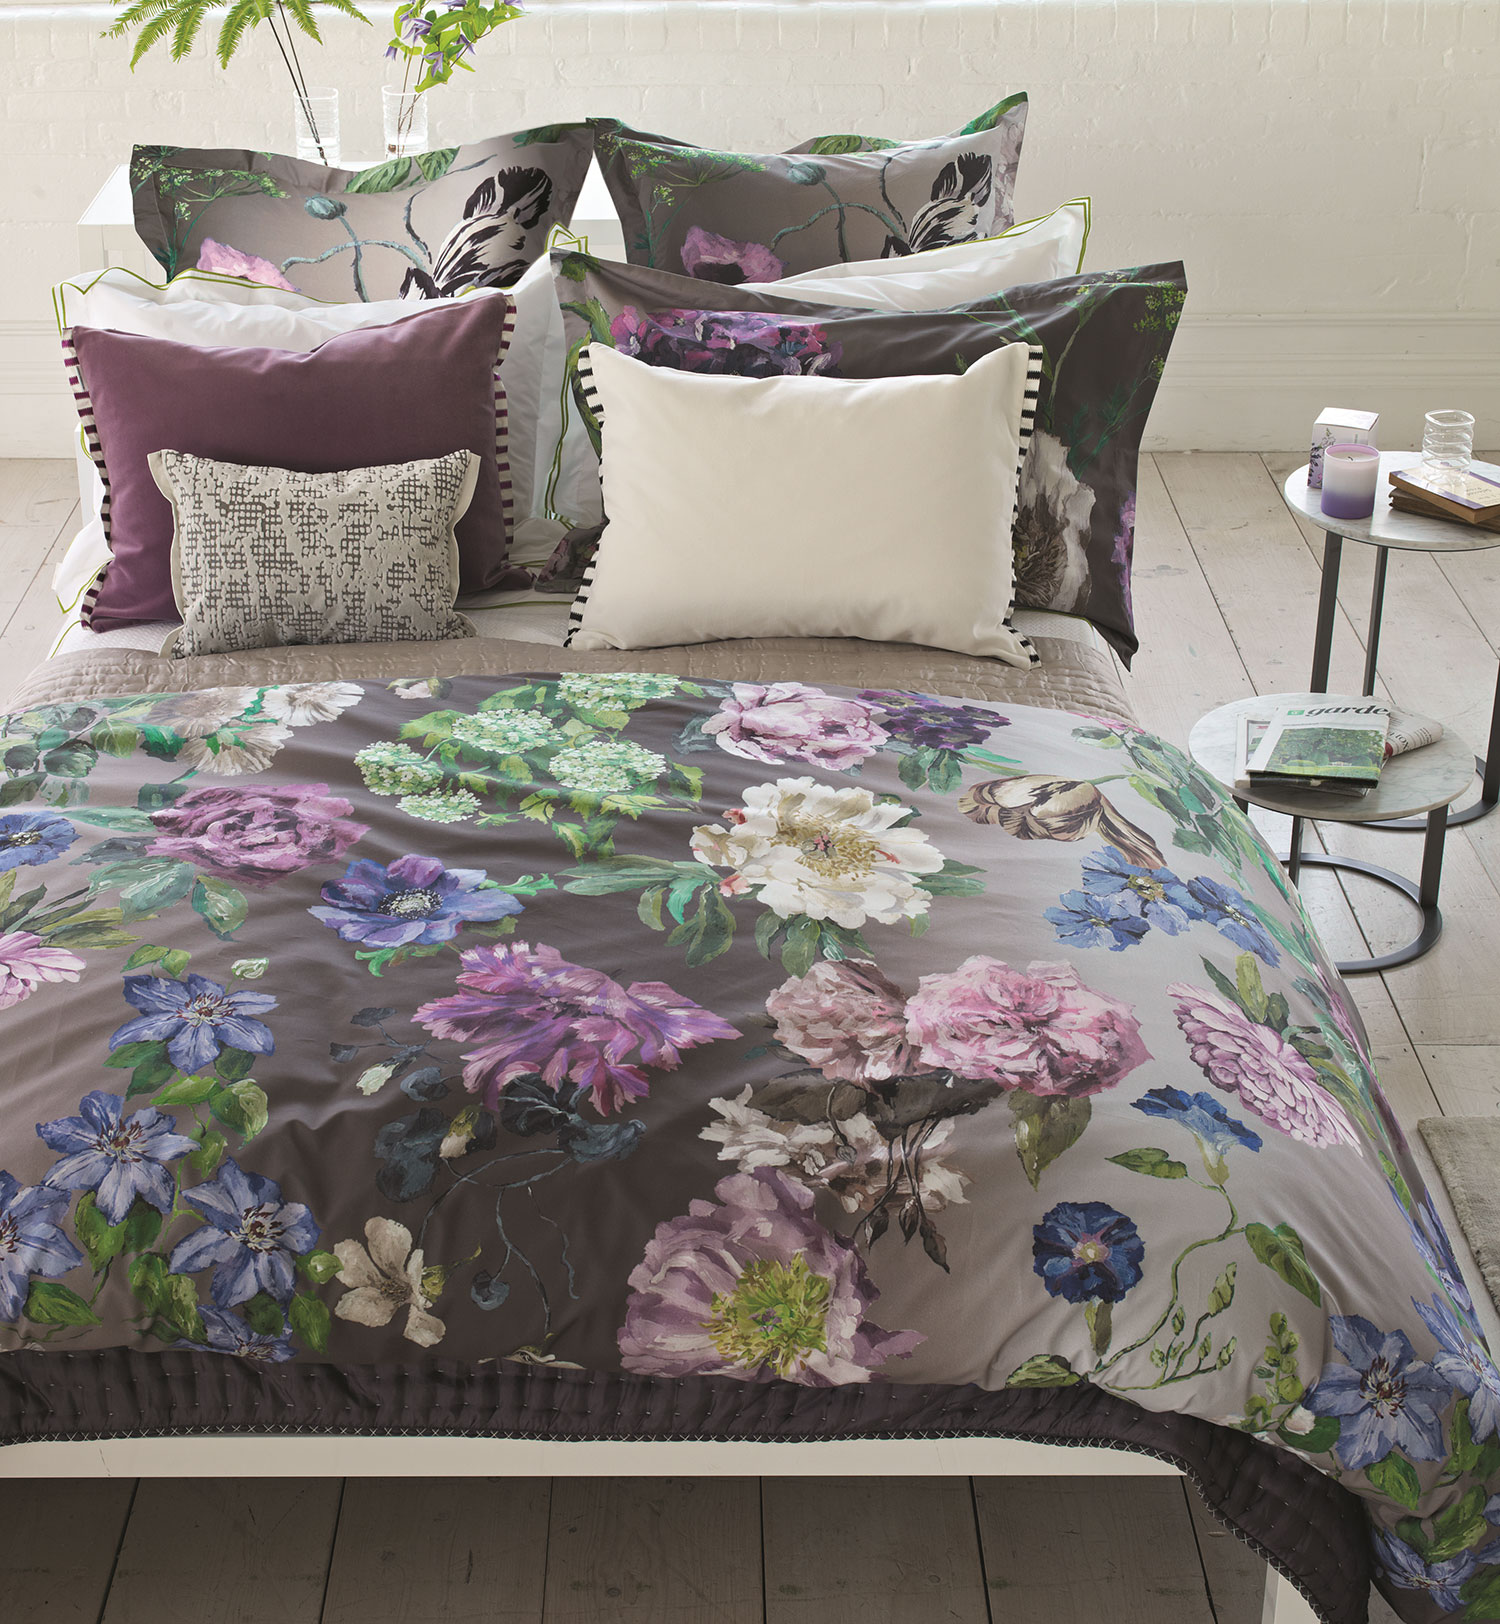 Black Plaid Wallpaper Alexandria Amethyst By Designers Guild Bedding By